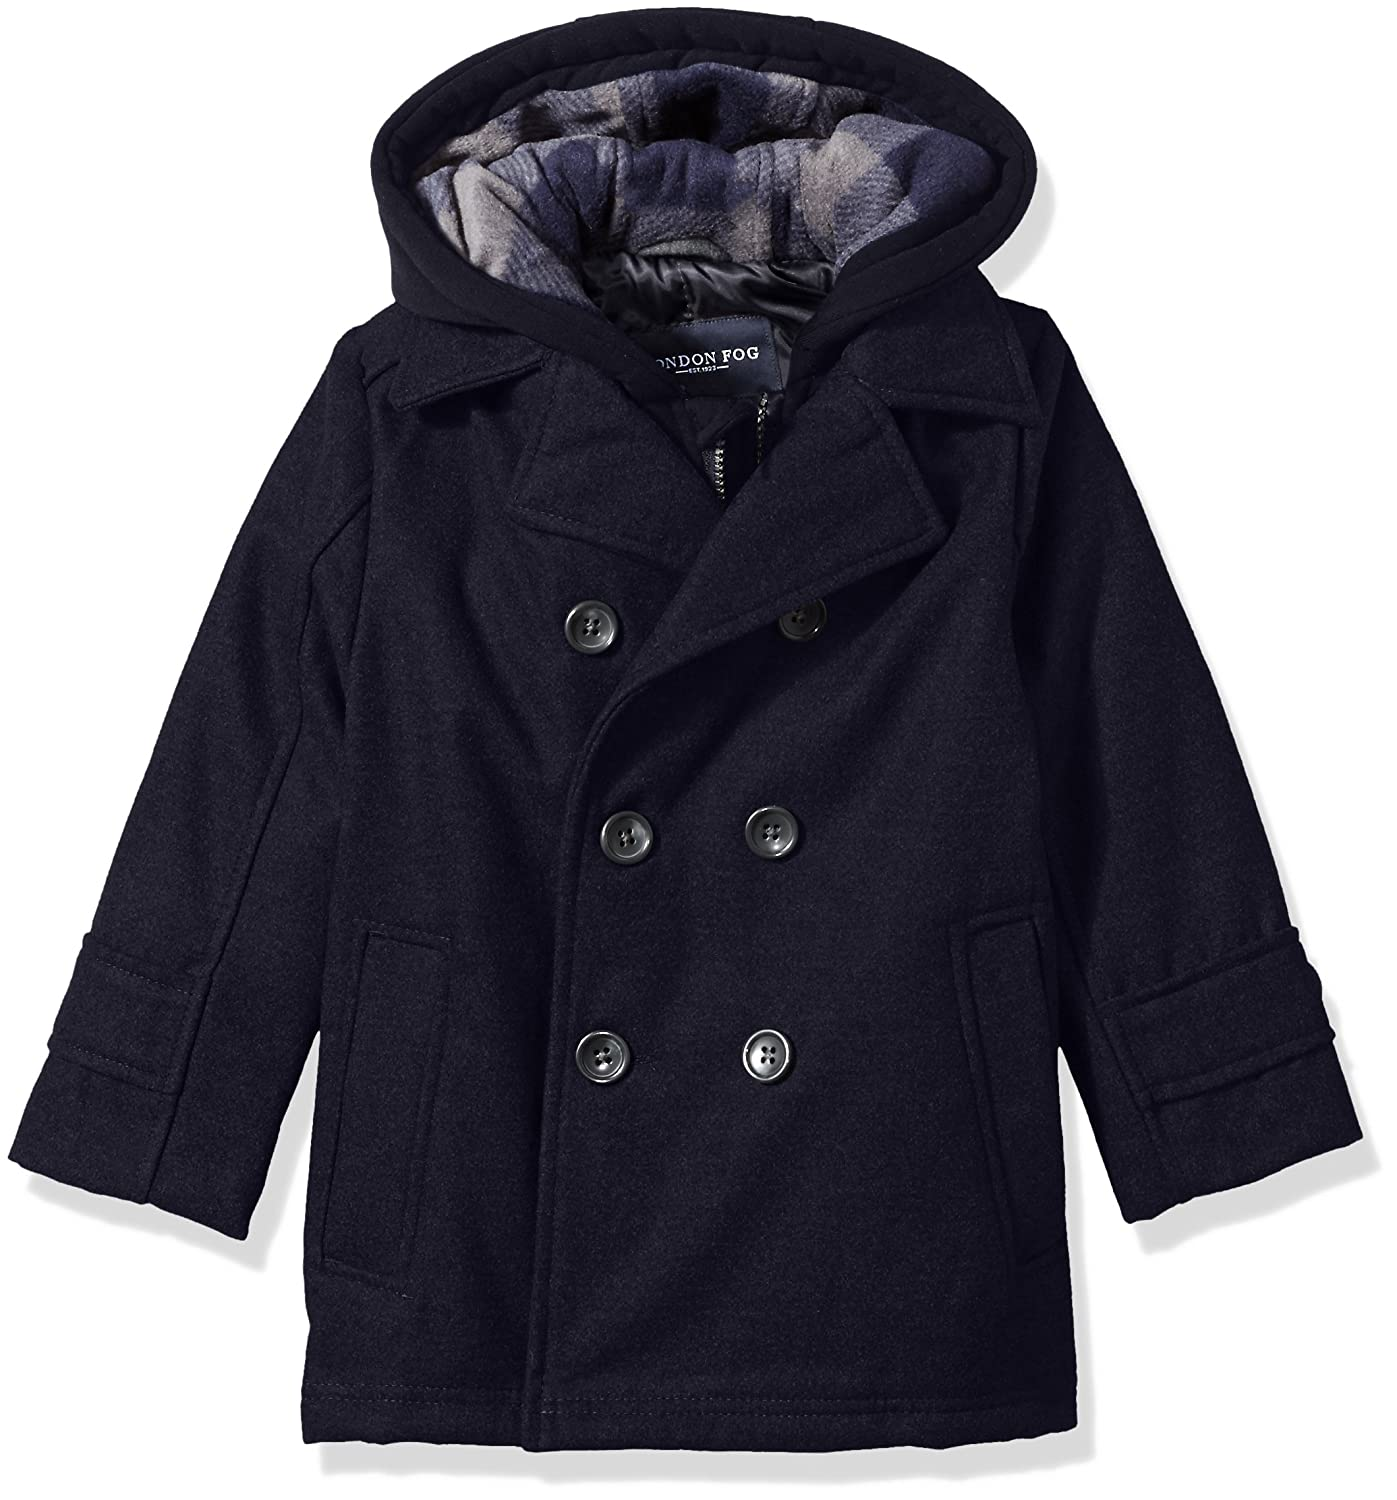 London Fog Boys Double Breasted Faux Wool Hooded Coat Navy 5/6 L216E57